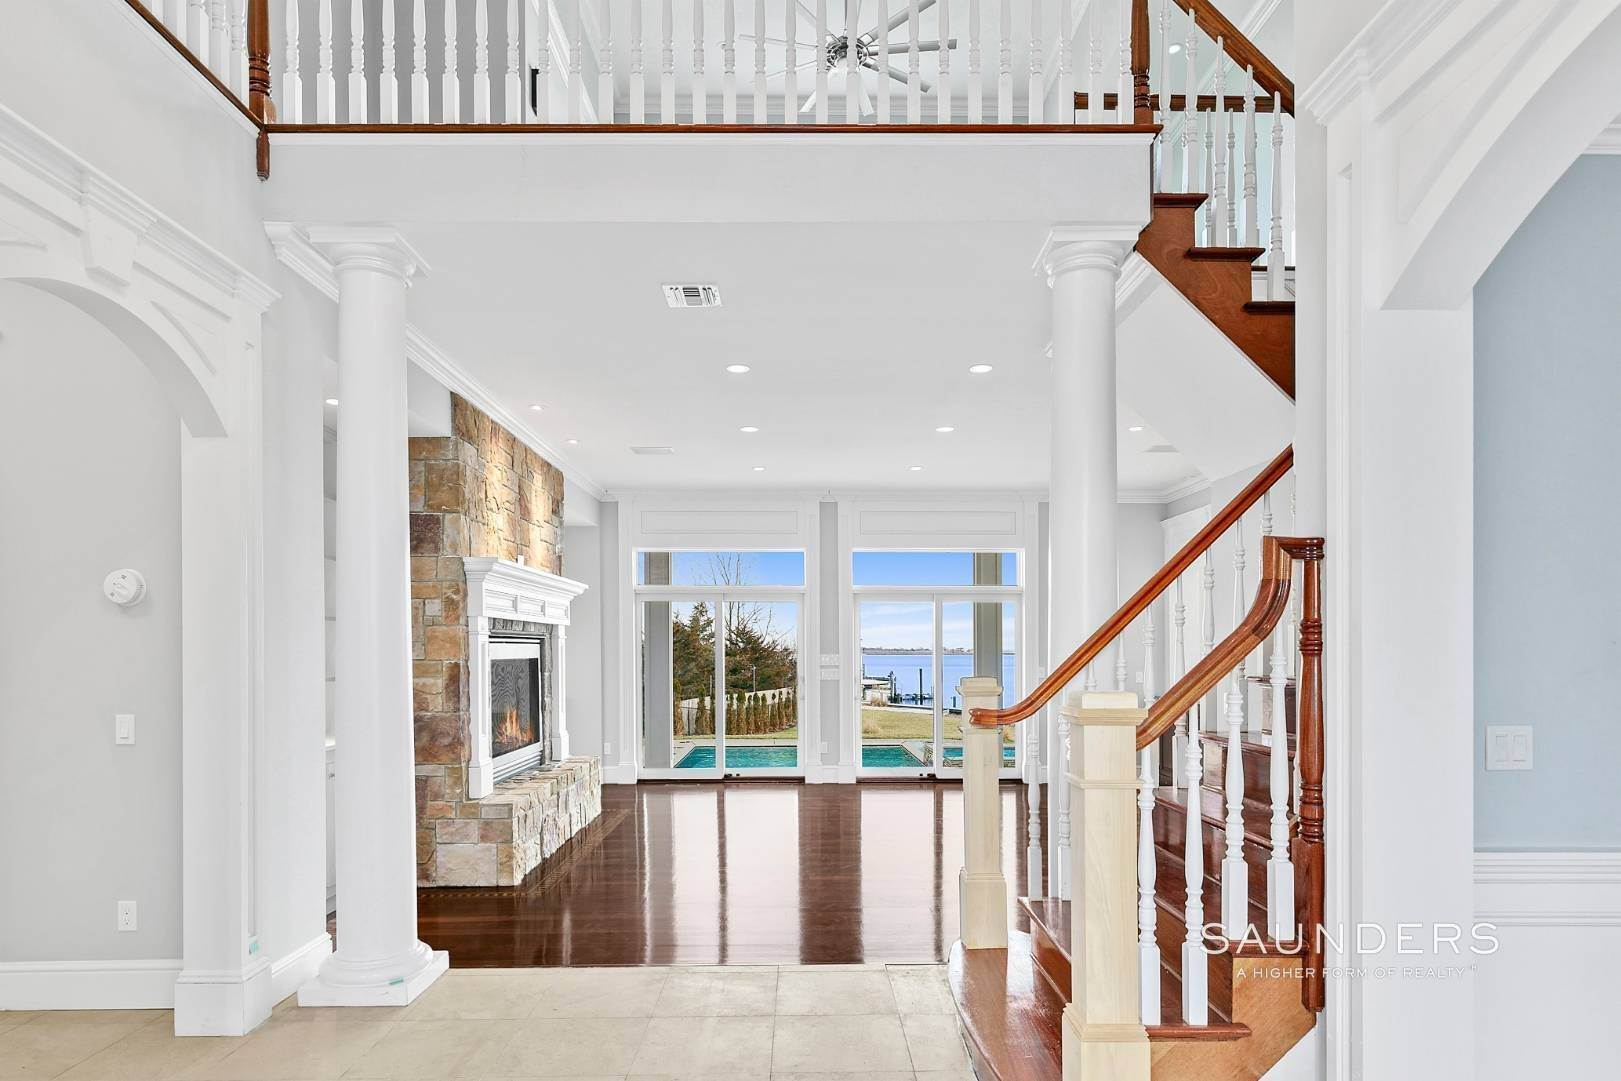 4. Single Family Homes for Sale at Waterfront Estate 99 Paquatuck Avenue, East Moriches, Hamptons Fringe, NY 11940